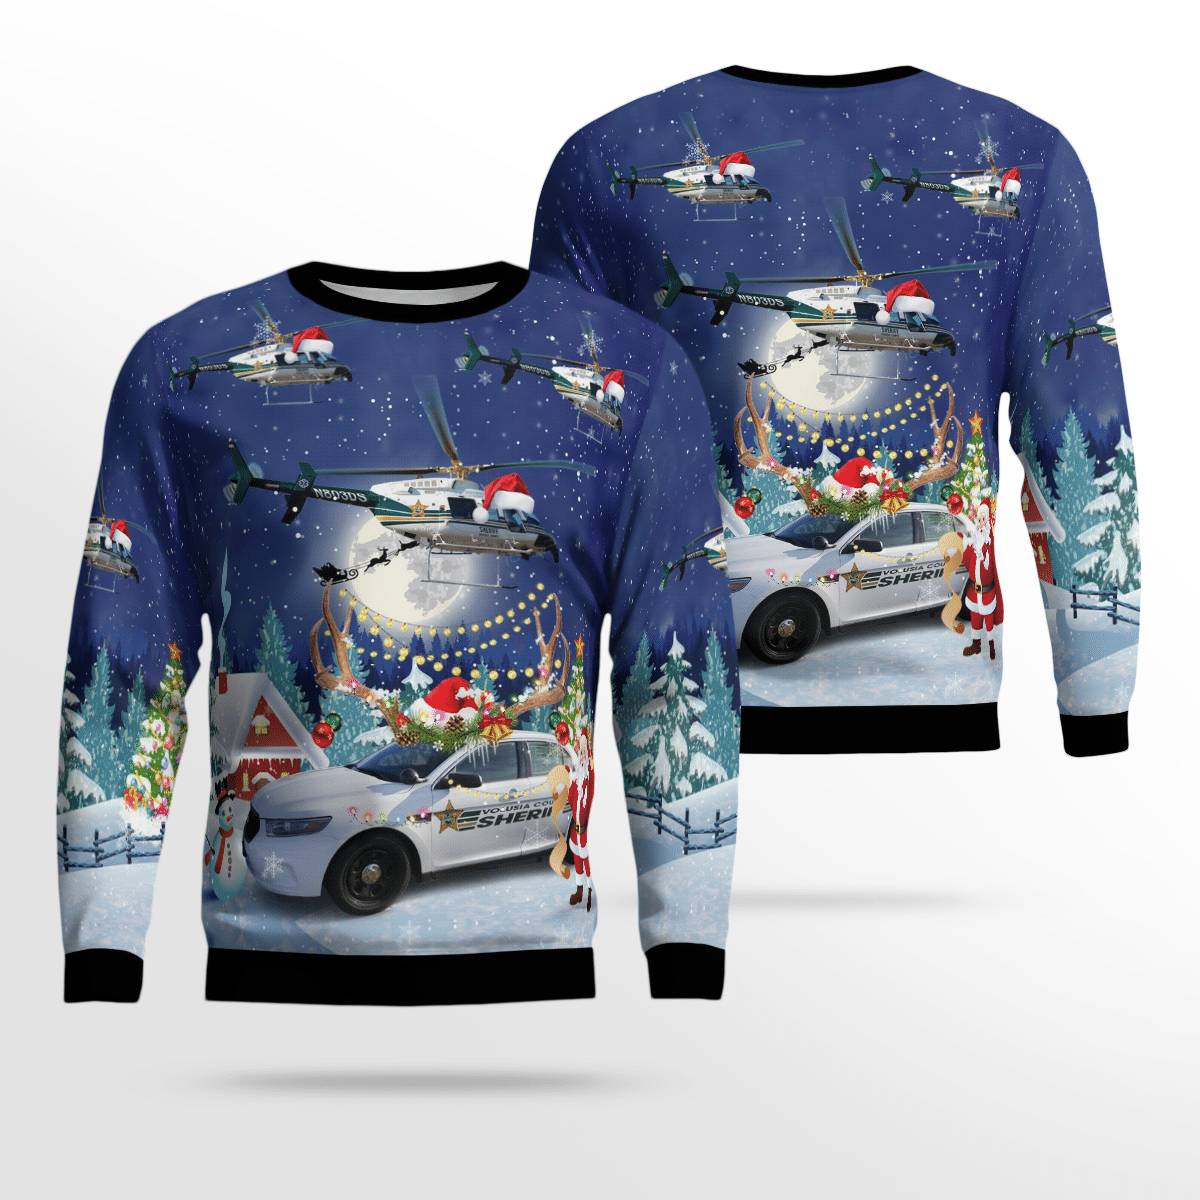 Volusia County Sheriff Bell 407 & Ford Police Interceptor Christmas Ugly Sweater